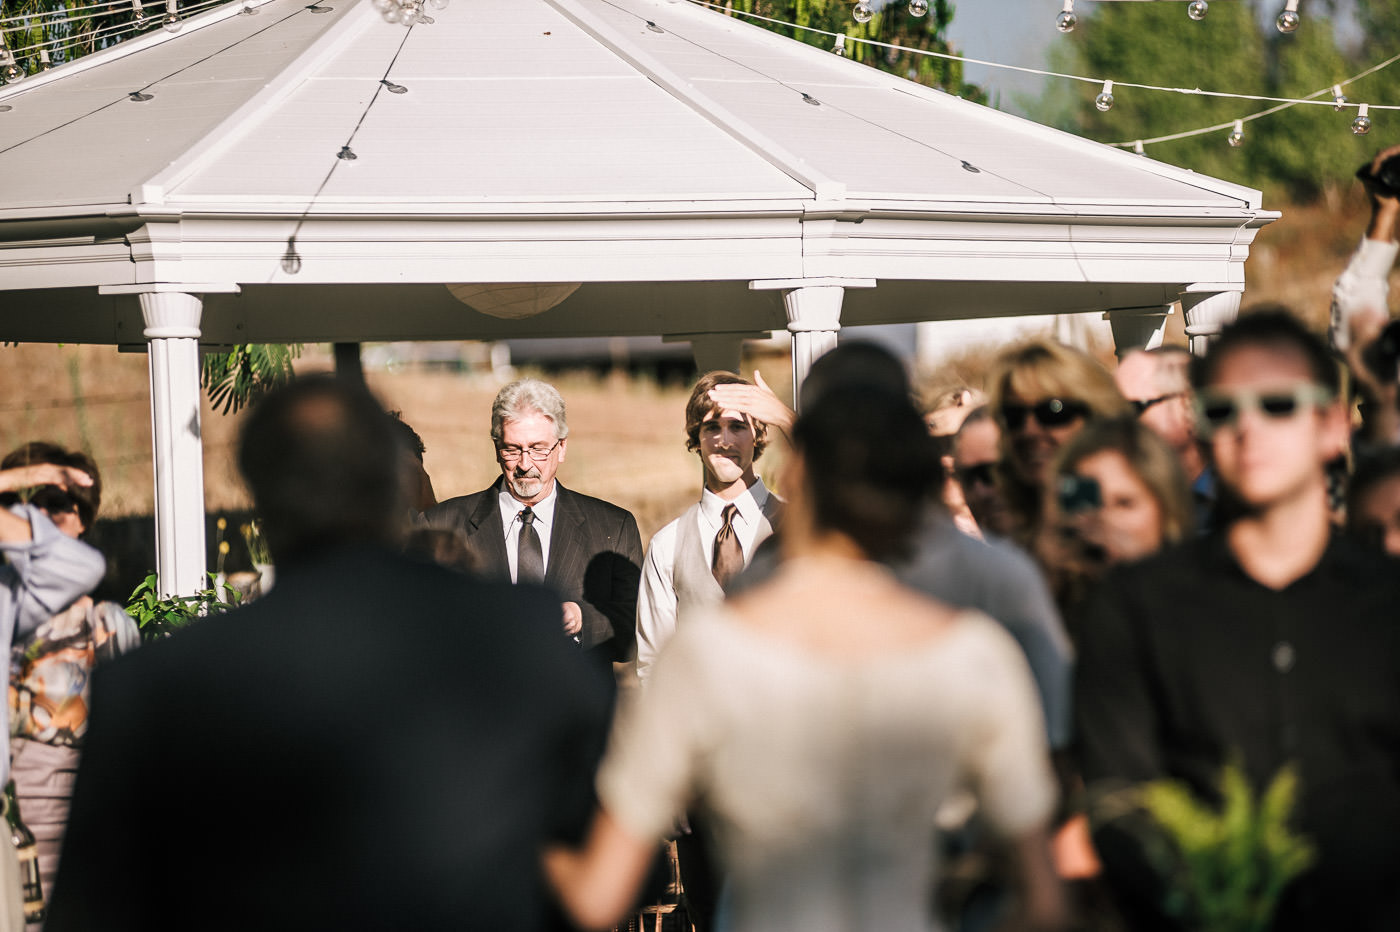 Groom sees the love of his life for the first time coming down the aisle at their romantic wine country wedding in Temecula california